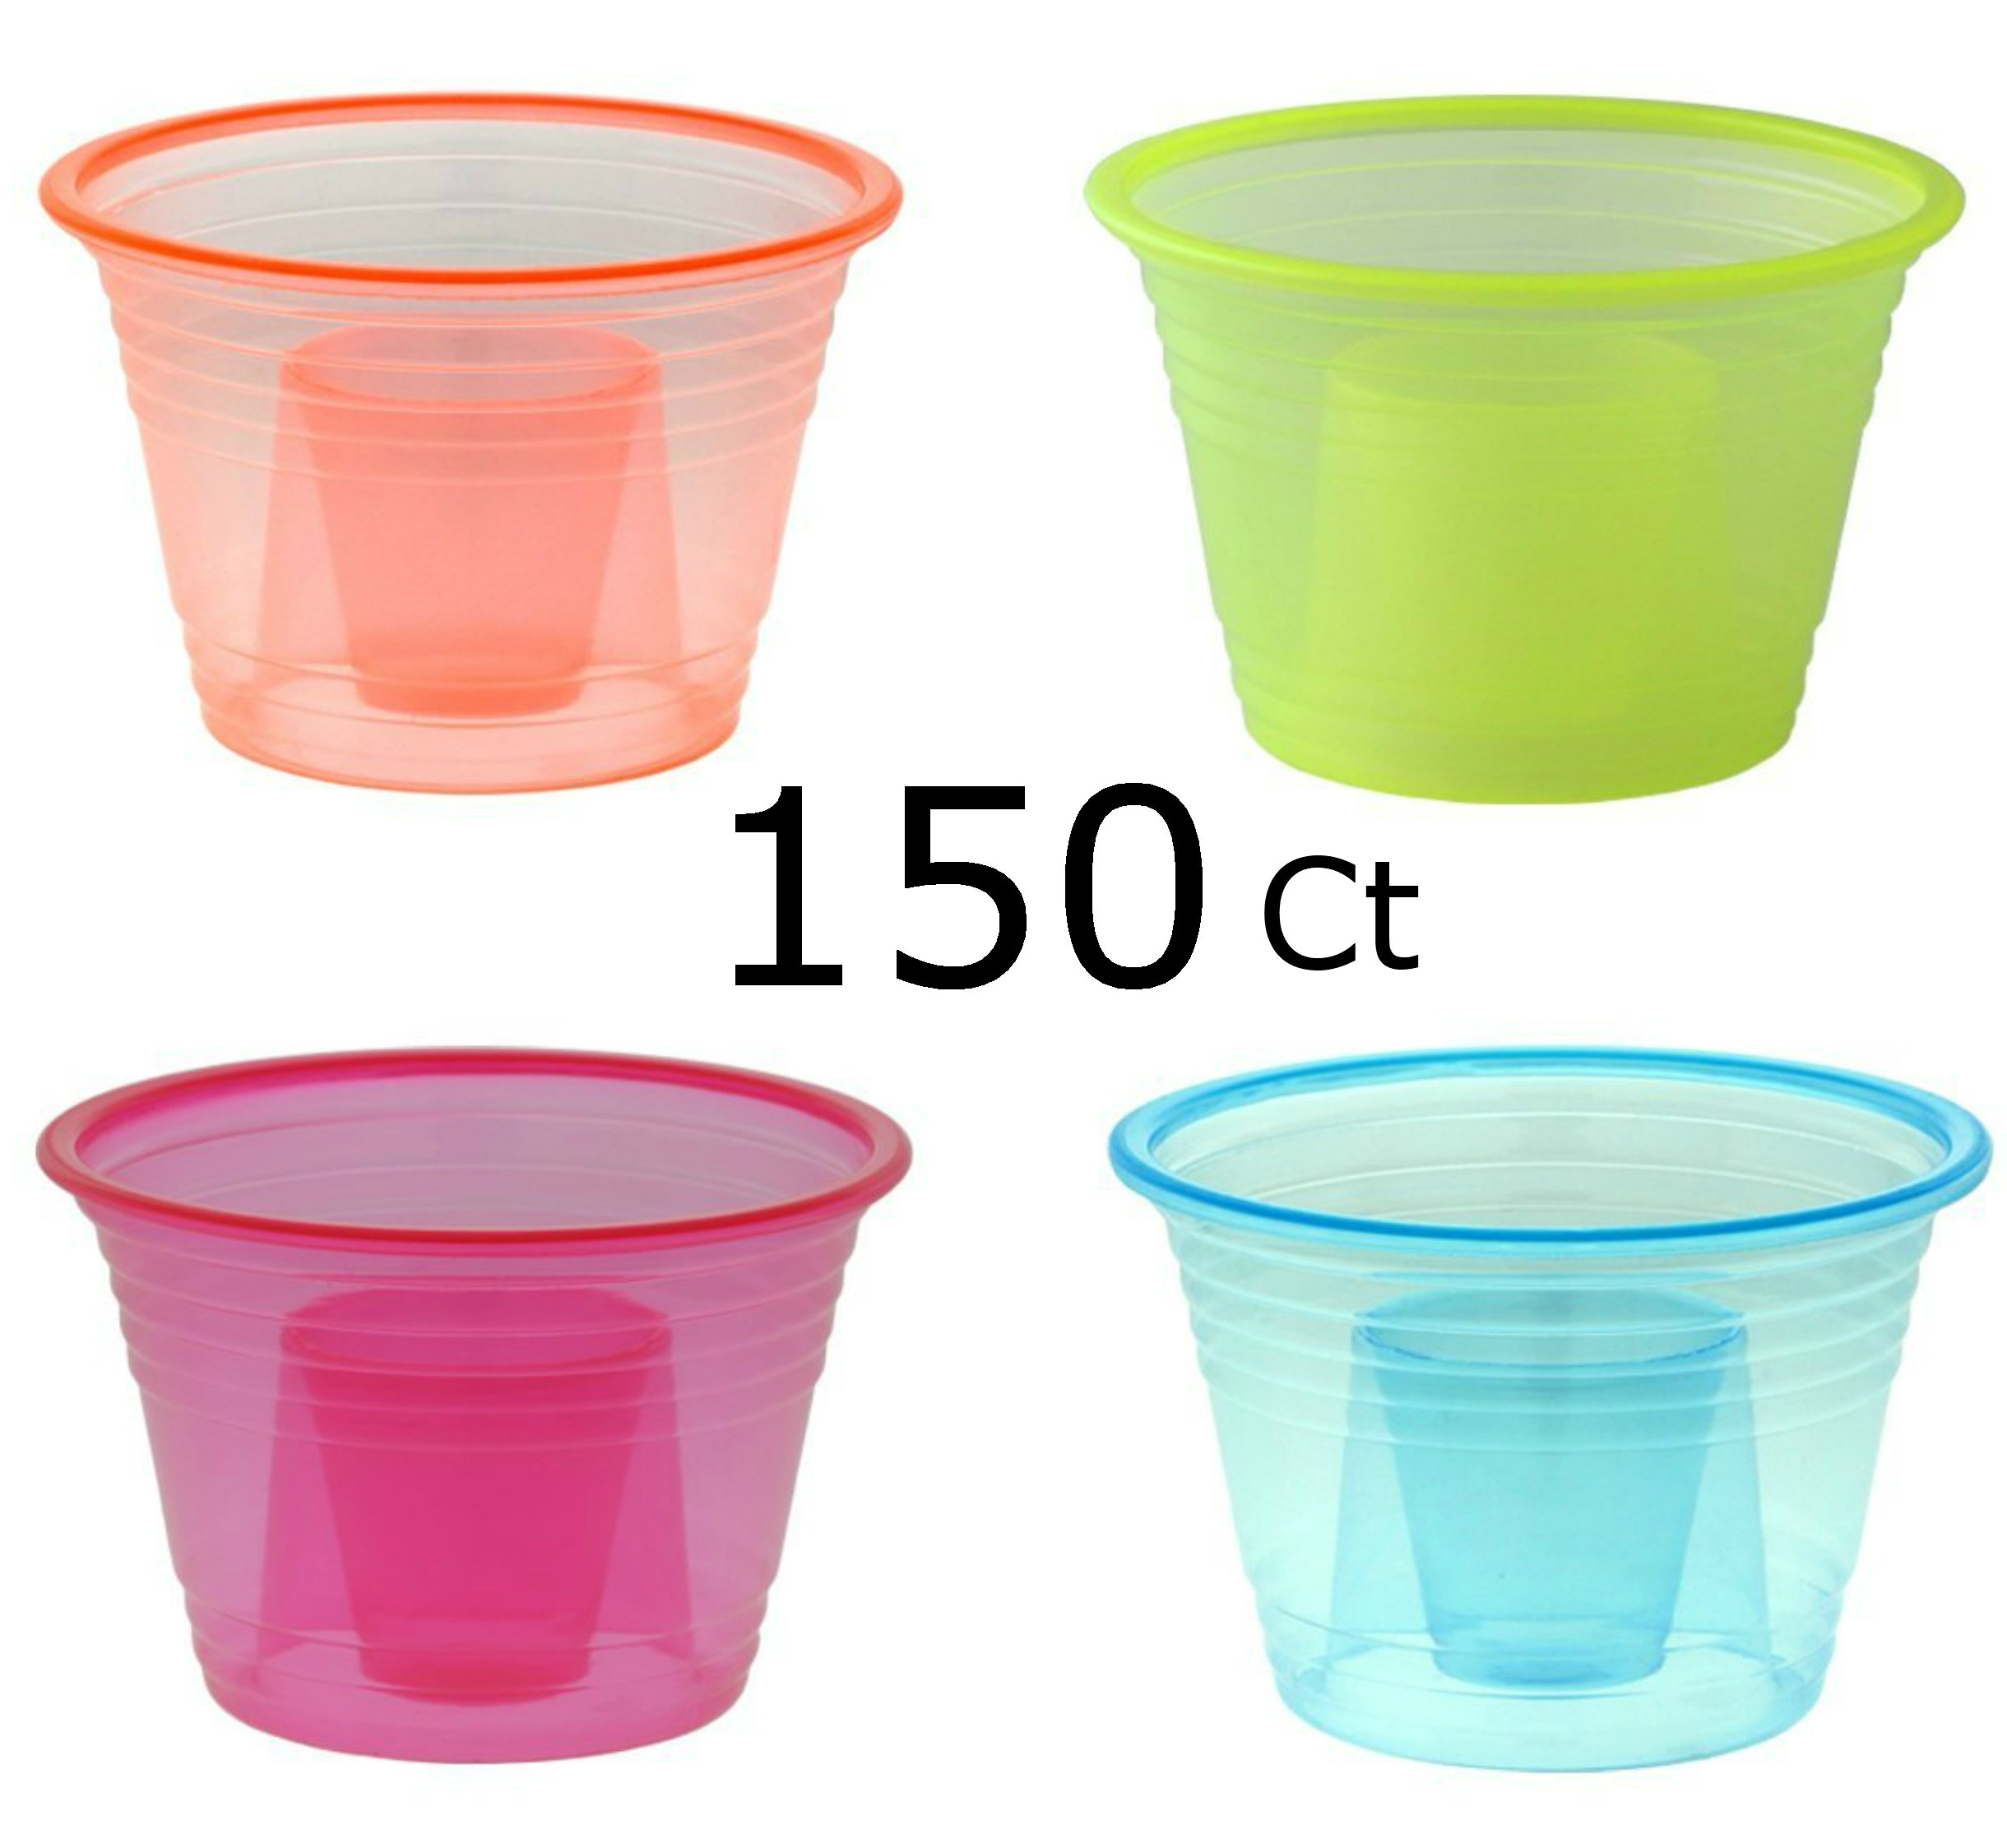 Zappy 150 Assorted Neon Colors Disposable Plastic Party Bomber Power Bomber Jager Bomb Cups Shot Glass Glasses Shot Cup Cups Jager bomb glasses 150 Ct Assorted Colors